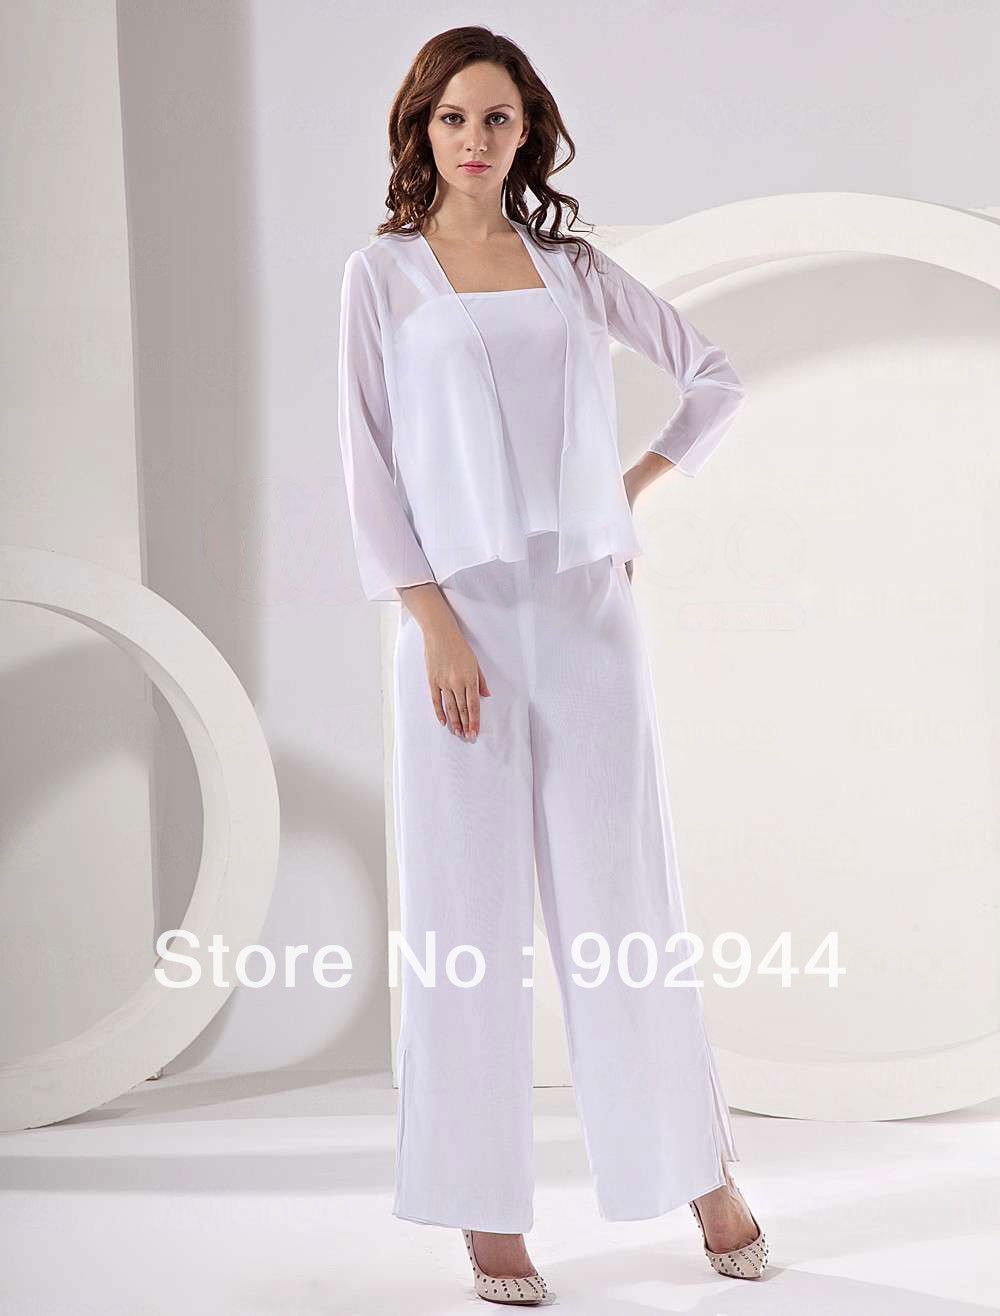 eb4ca8ff96e 2014 white Black Navy blue Purple Chiffon Casual Mother Of the Bride 3 sets  Pant Suits With Long Sleeve Jacket dresses Plus Size US  139.55